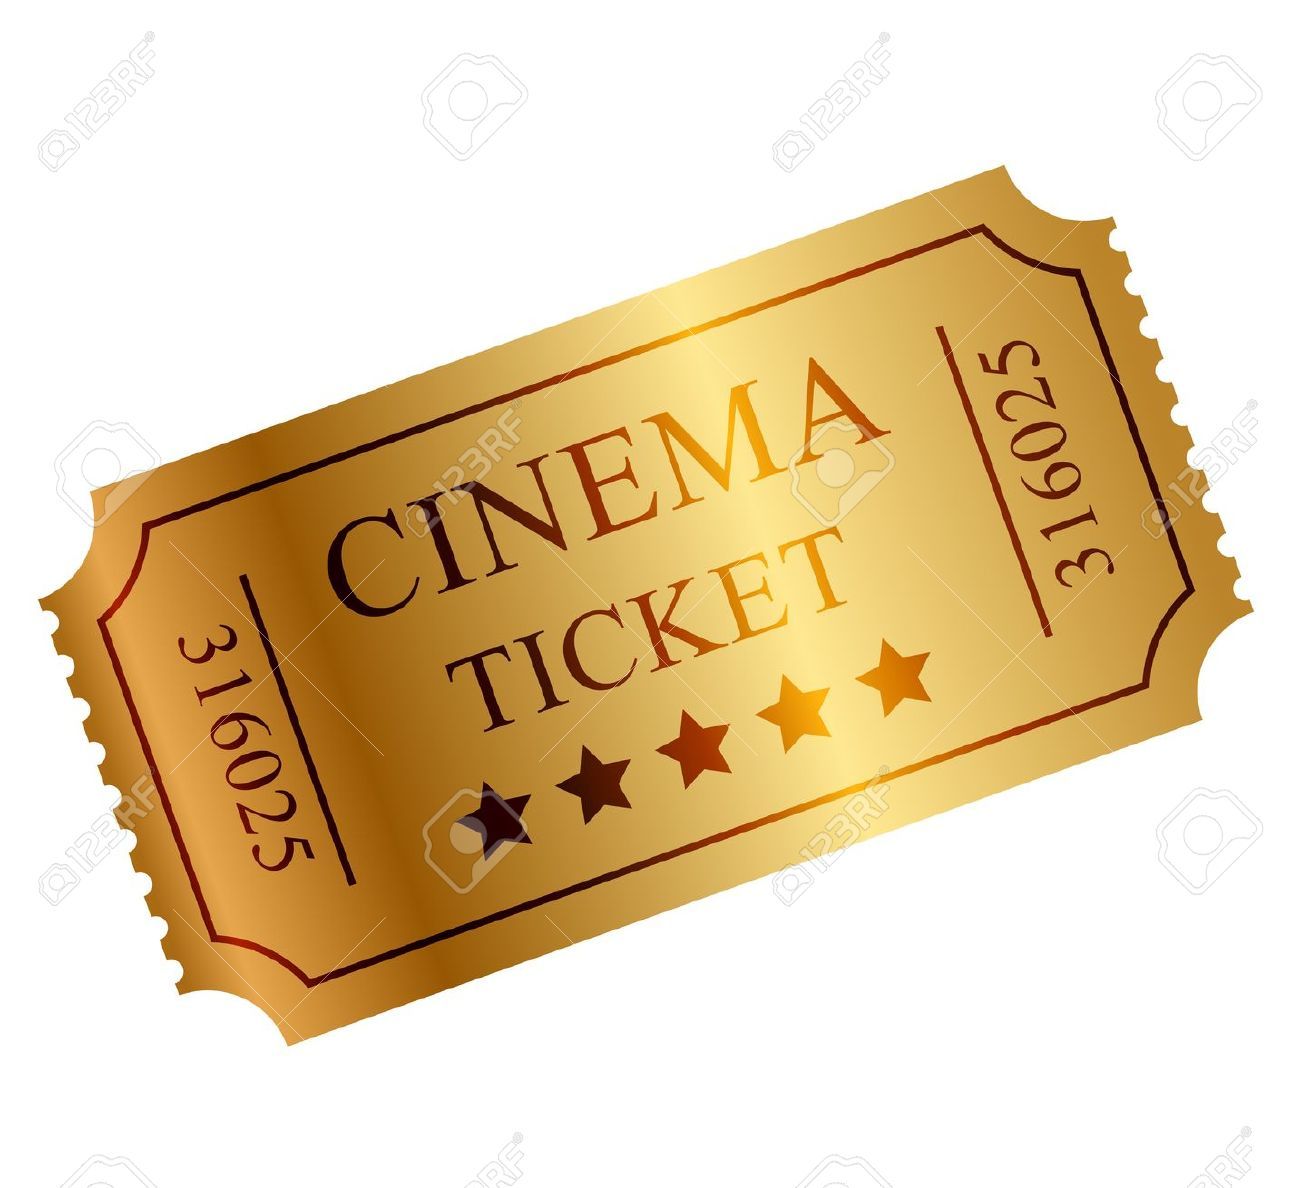 Movie Ticket Clipart 6.